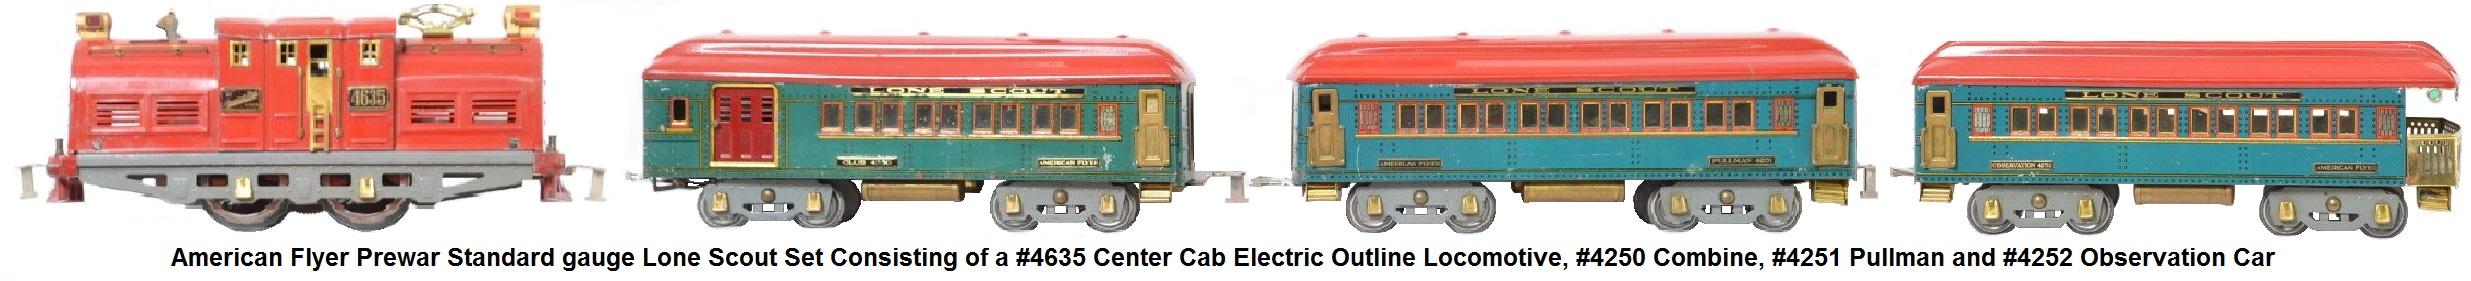 American Flyer Wide gauge Lone Scout set consisting of a #4635 center cab electric locomotive, #4250, #4251 and #4252 Pullman and observation cars